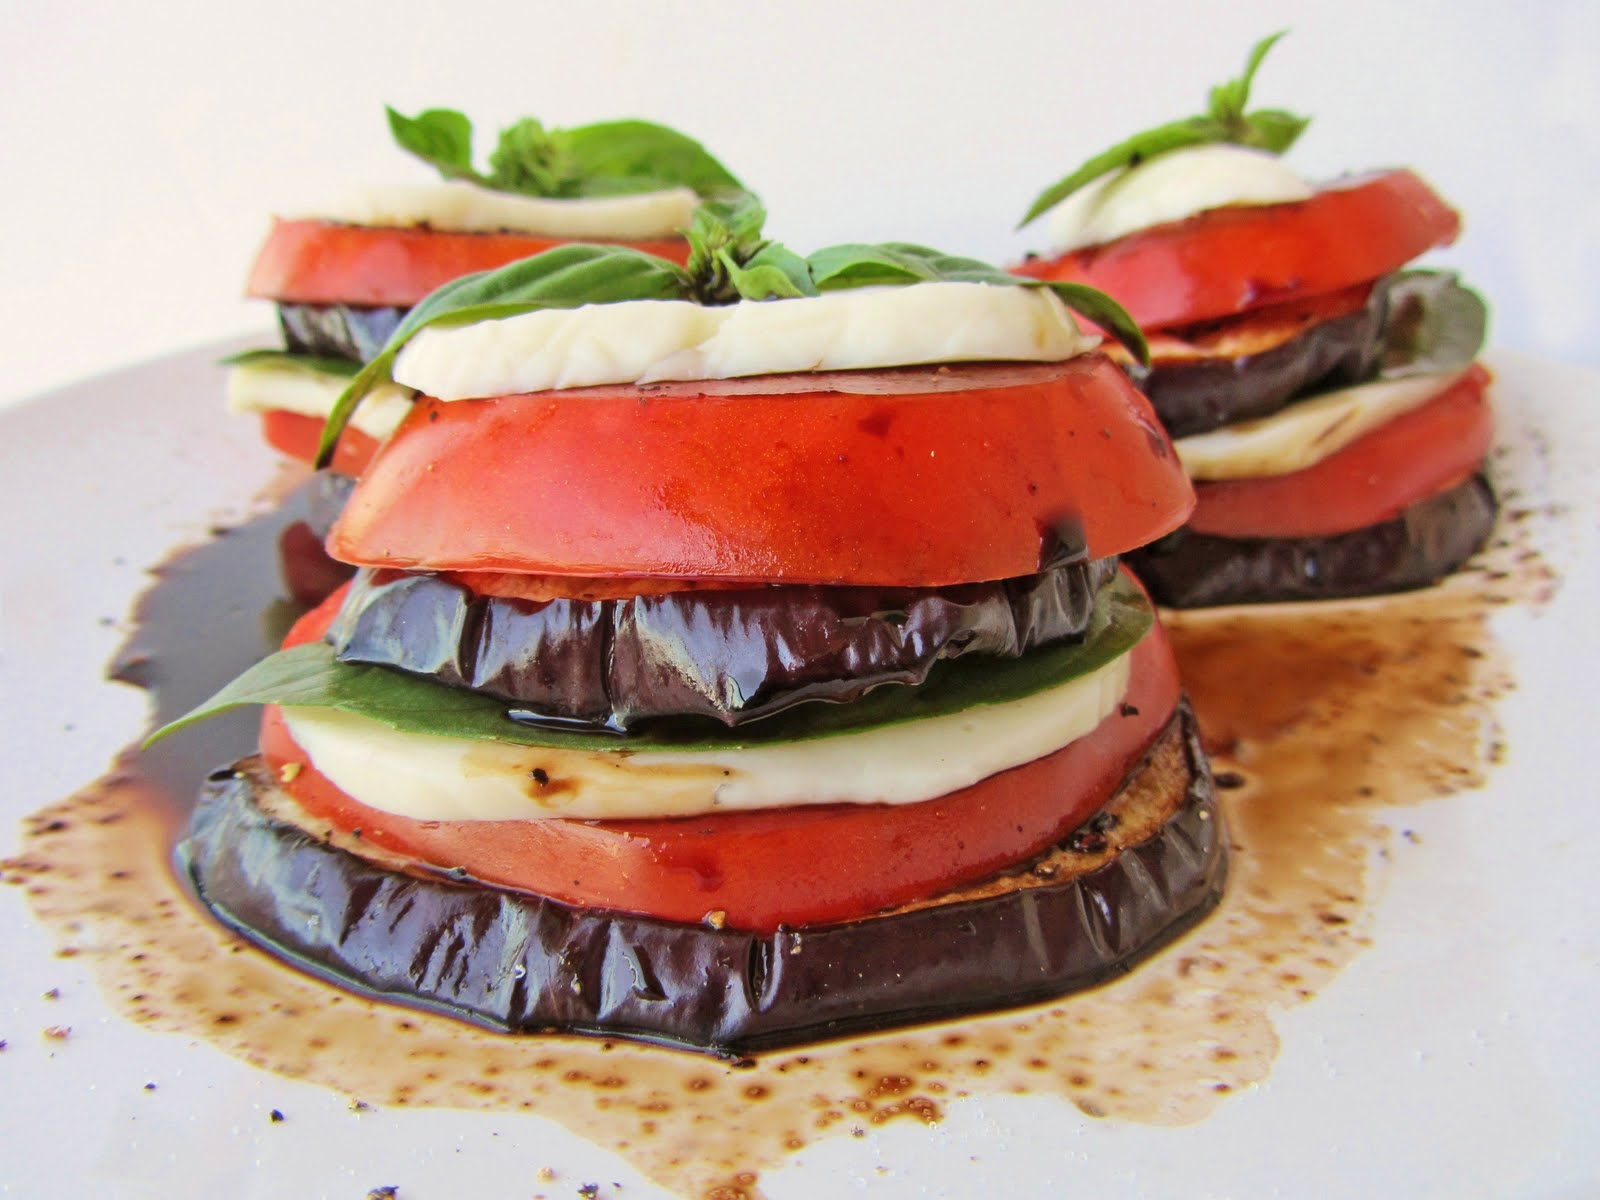 eggplant, tomato, mozzarella stacks